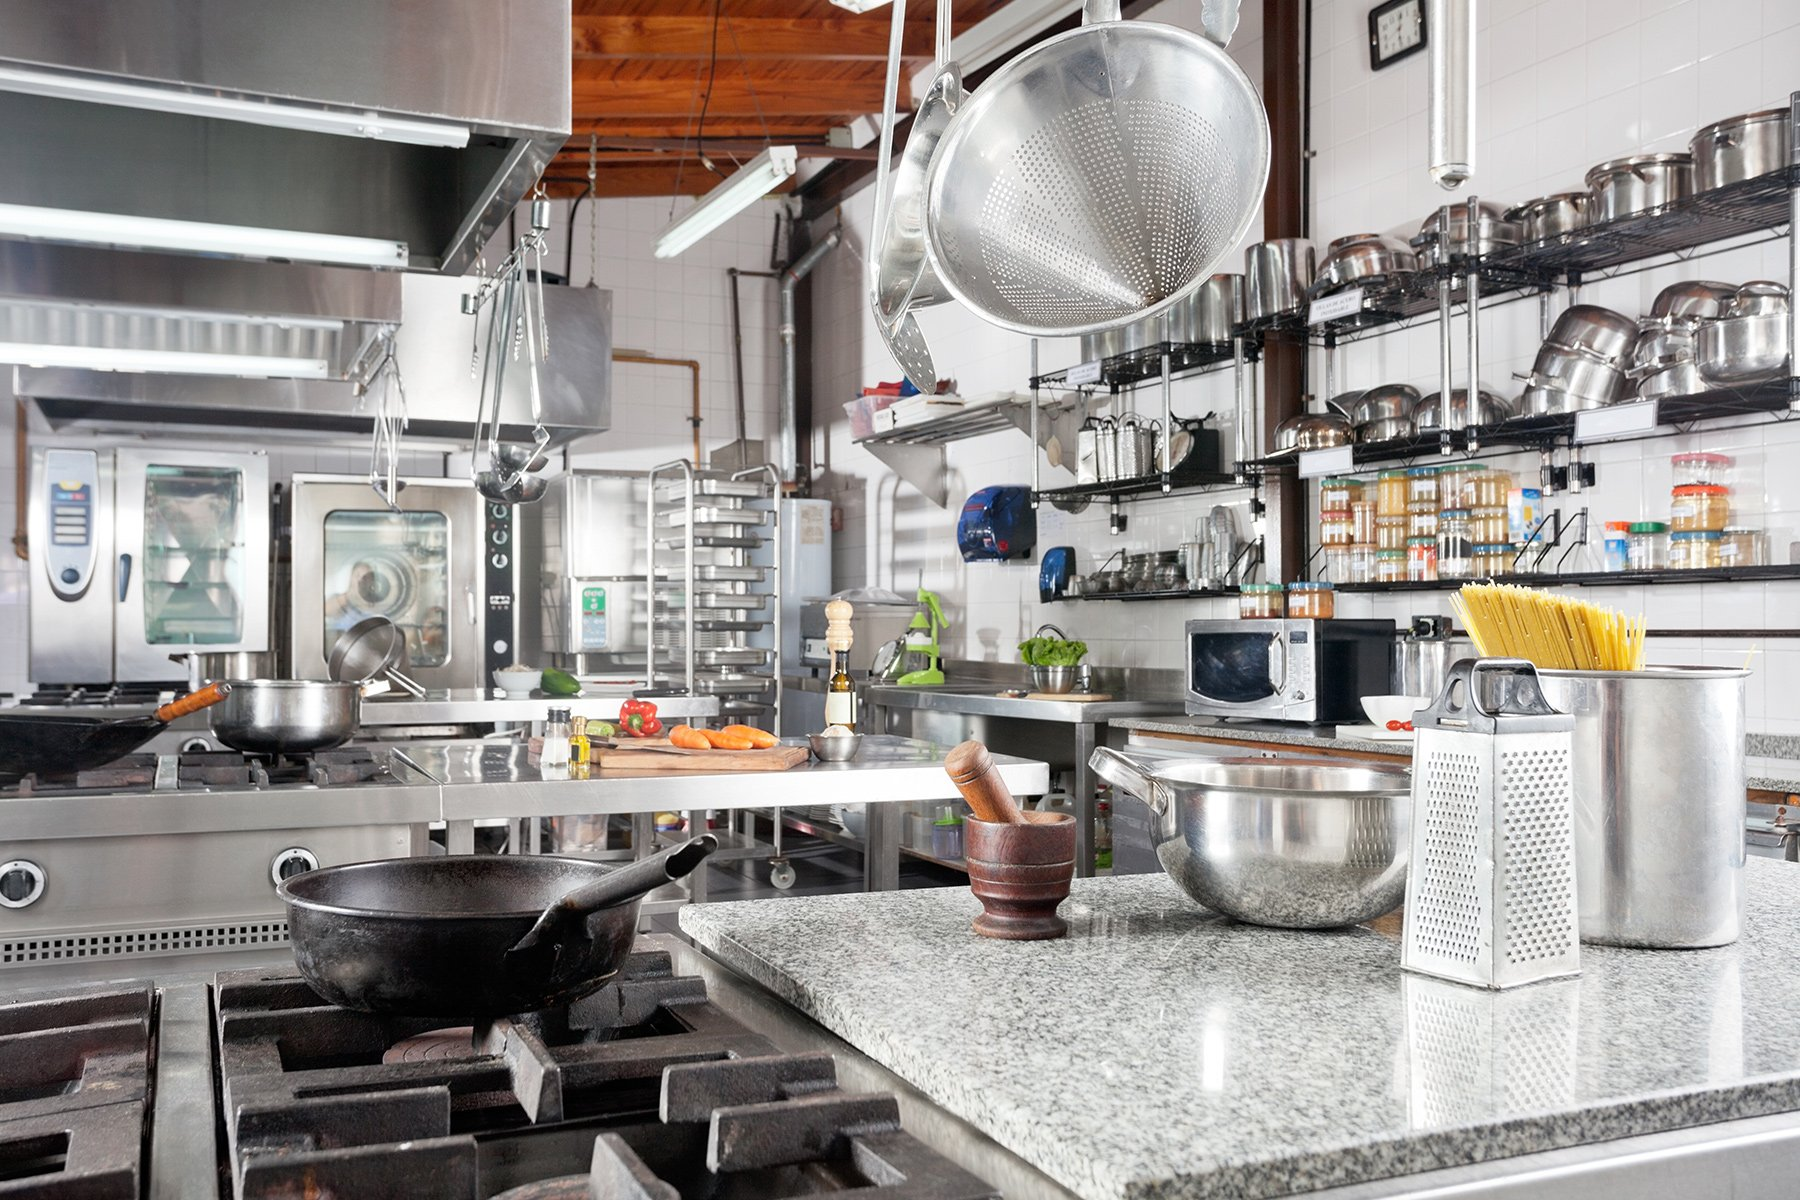 #1 food and commercial equipment suppliers